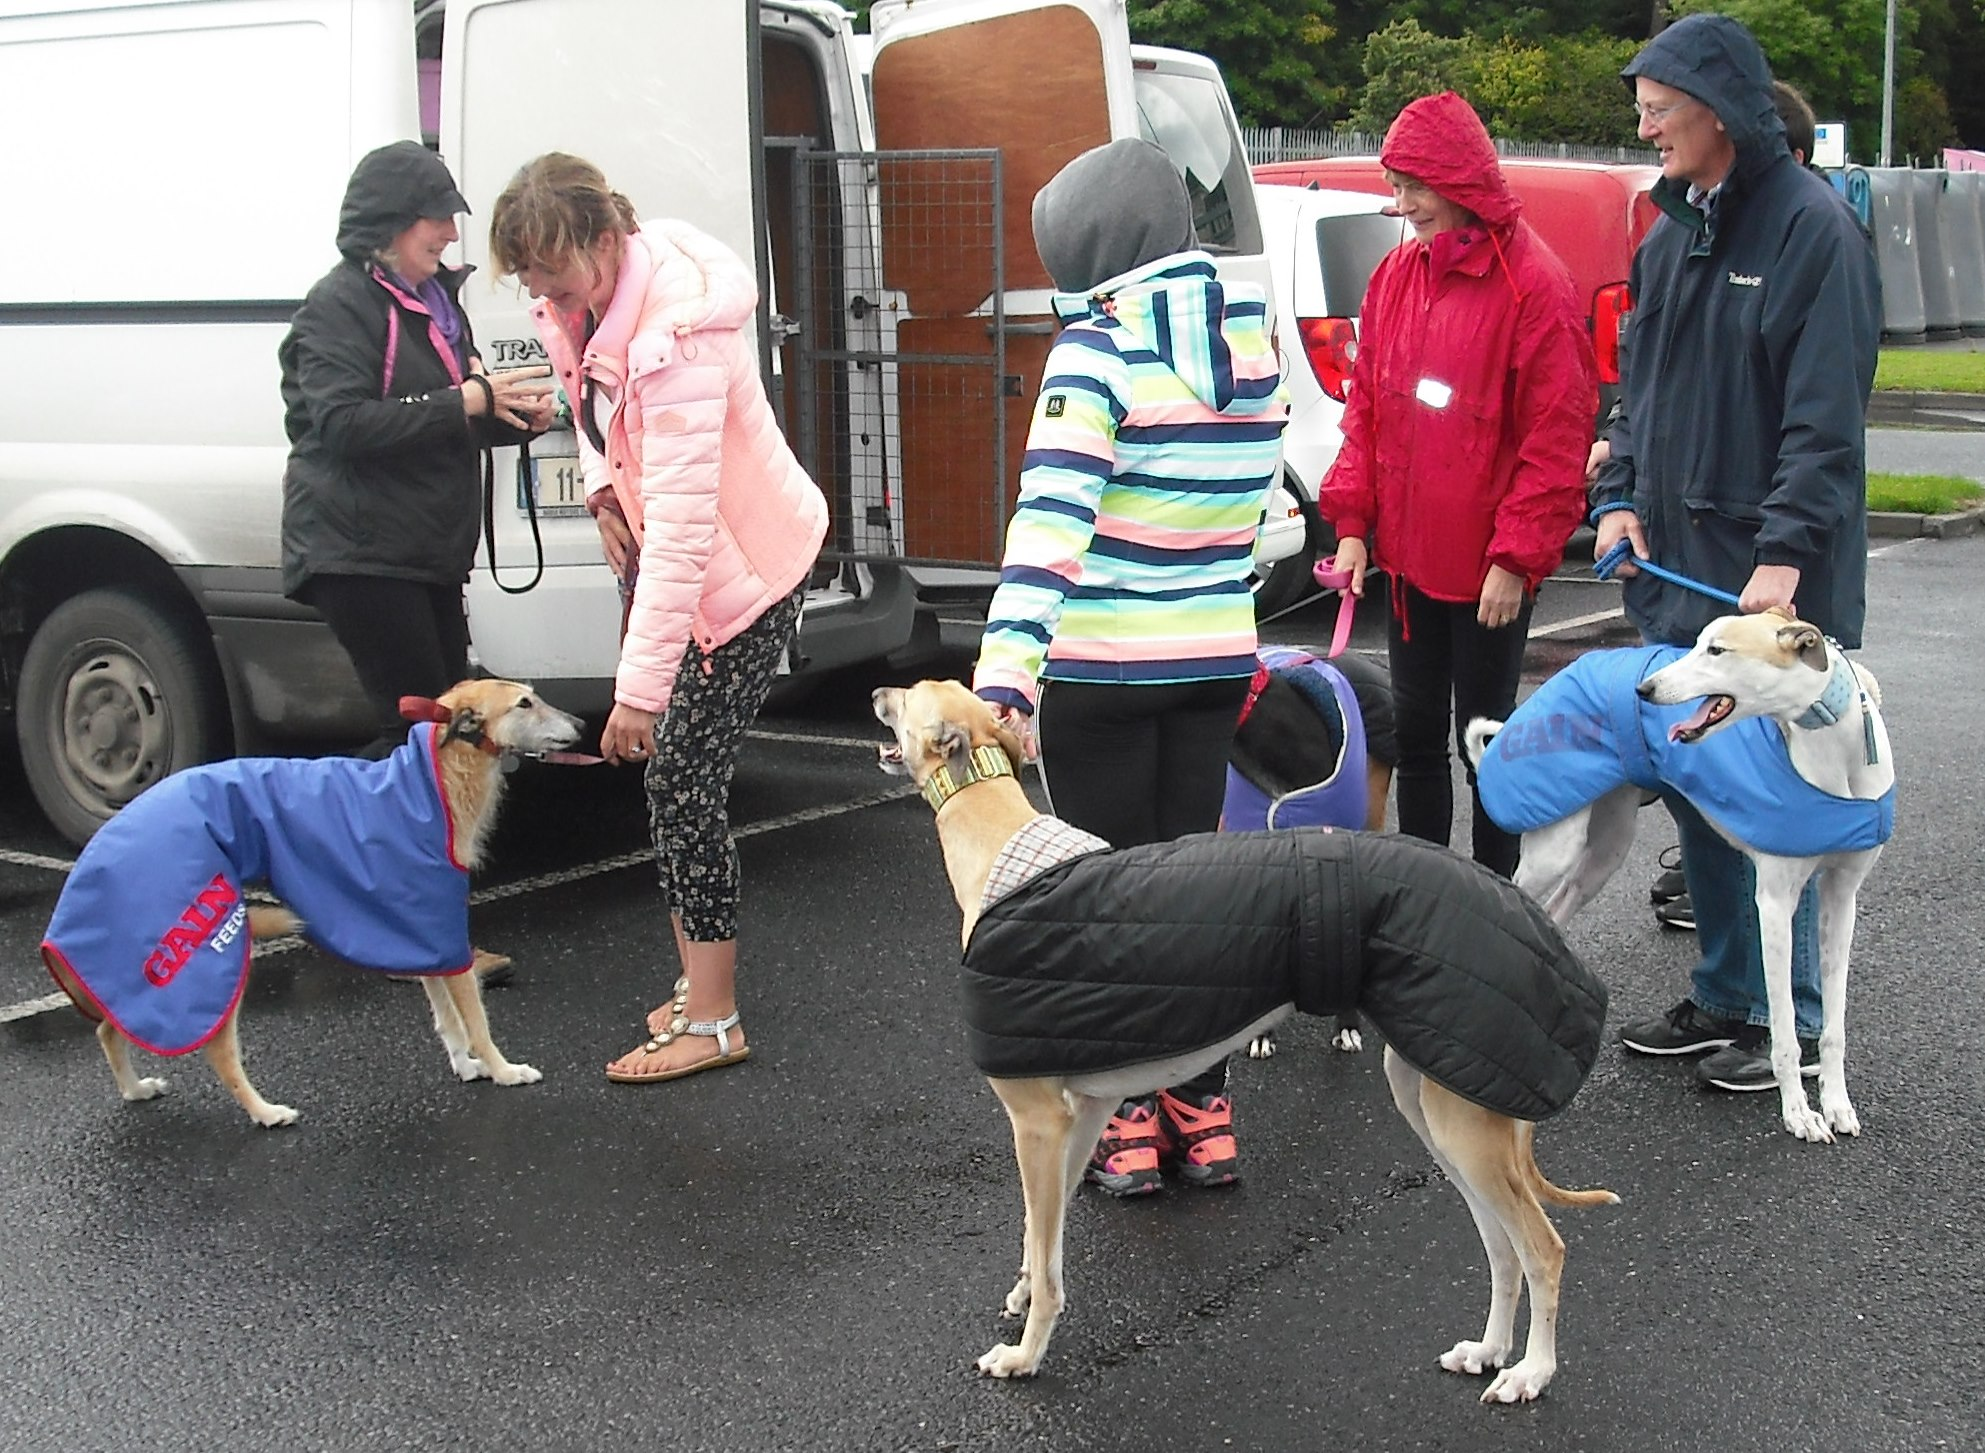 Owners and Supporters getting ready for the Clonmel Greyhound Stroll.jpg